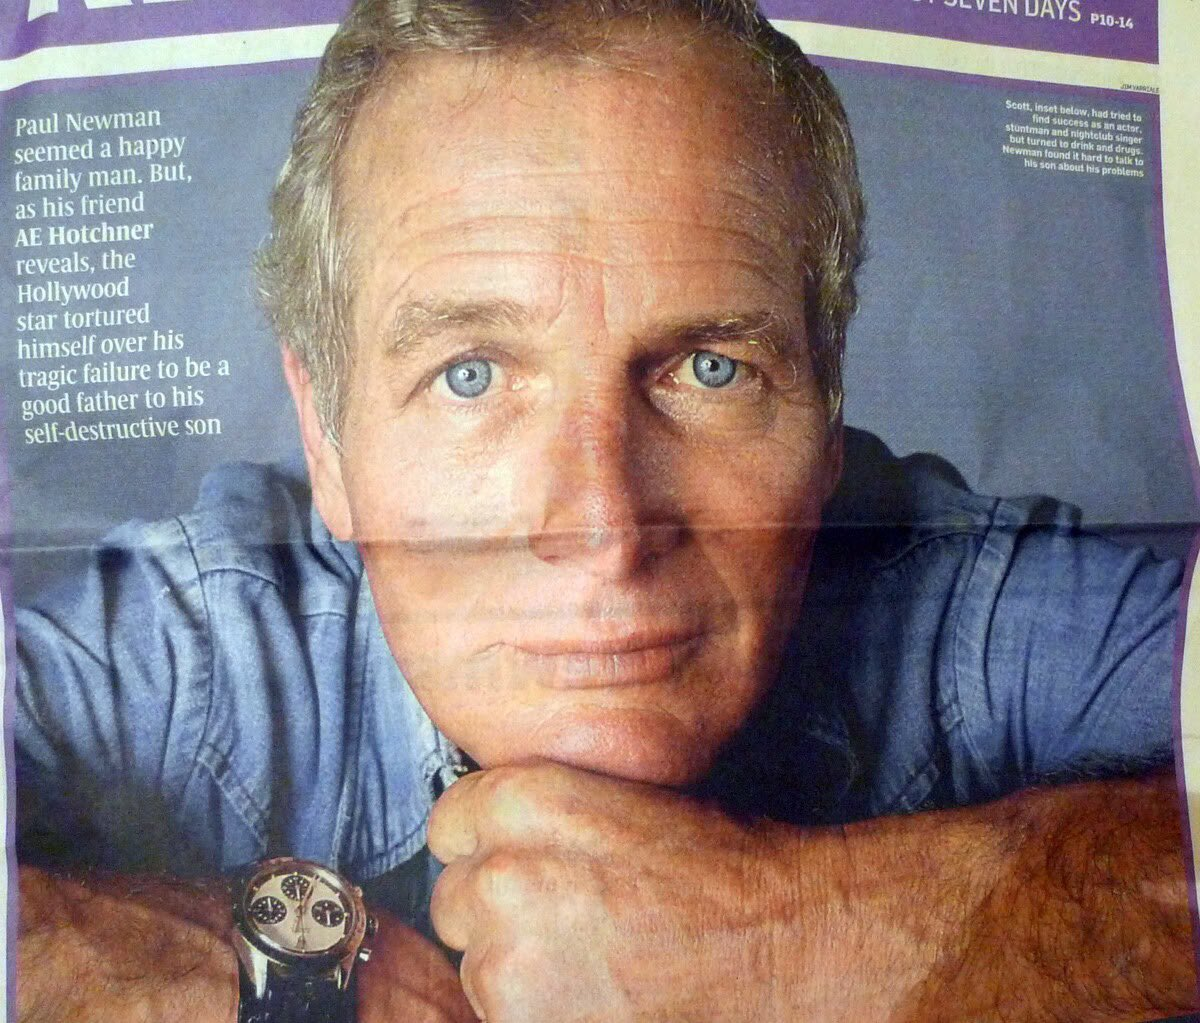 James Dowling On Twitter One Of The Few Photos Of Paul Newman